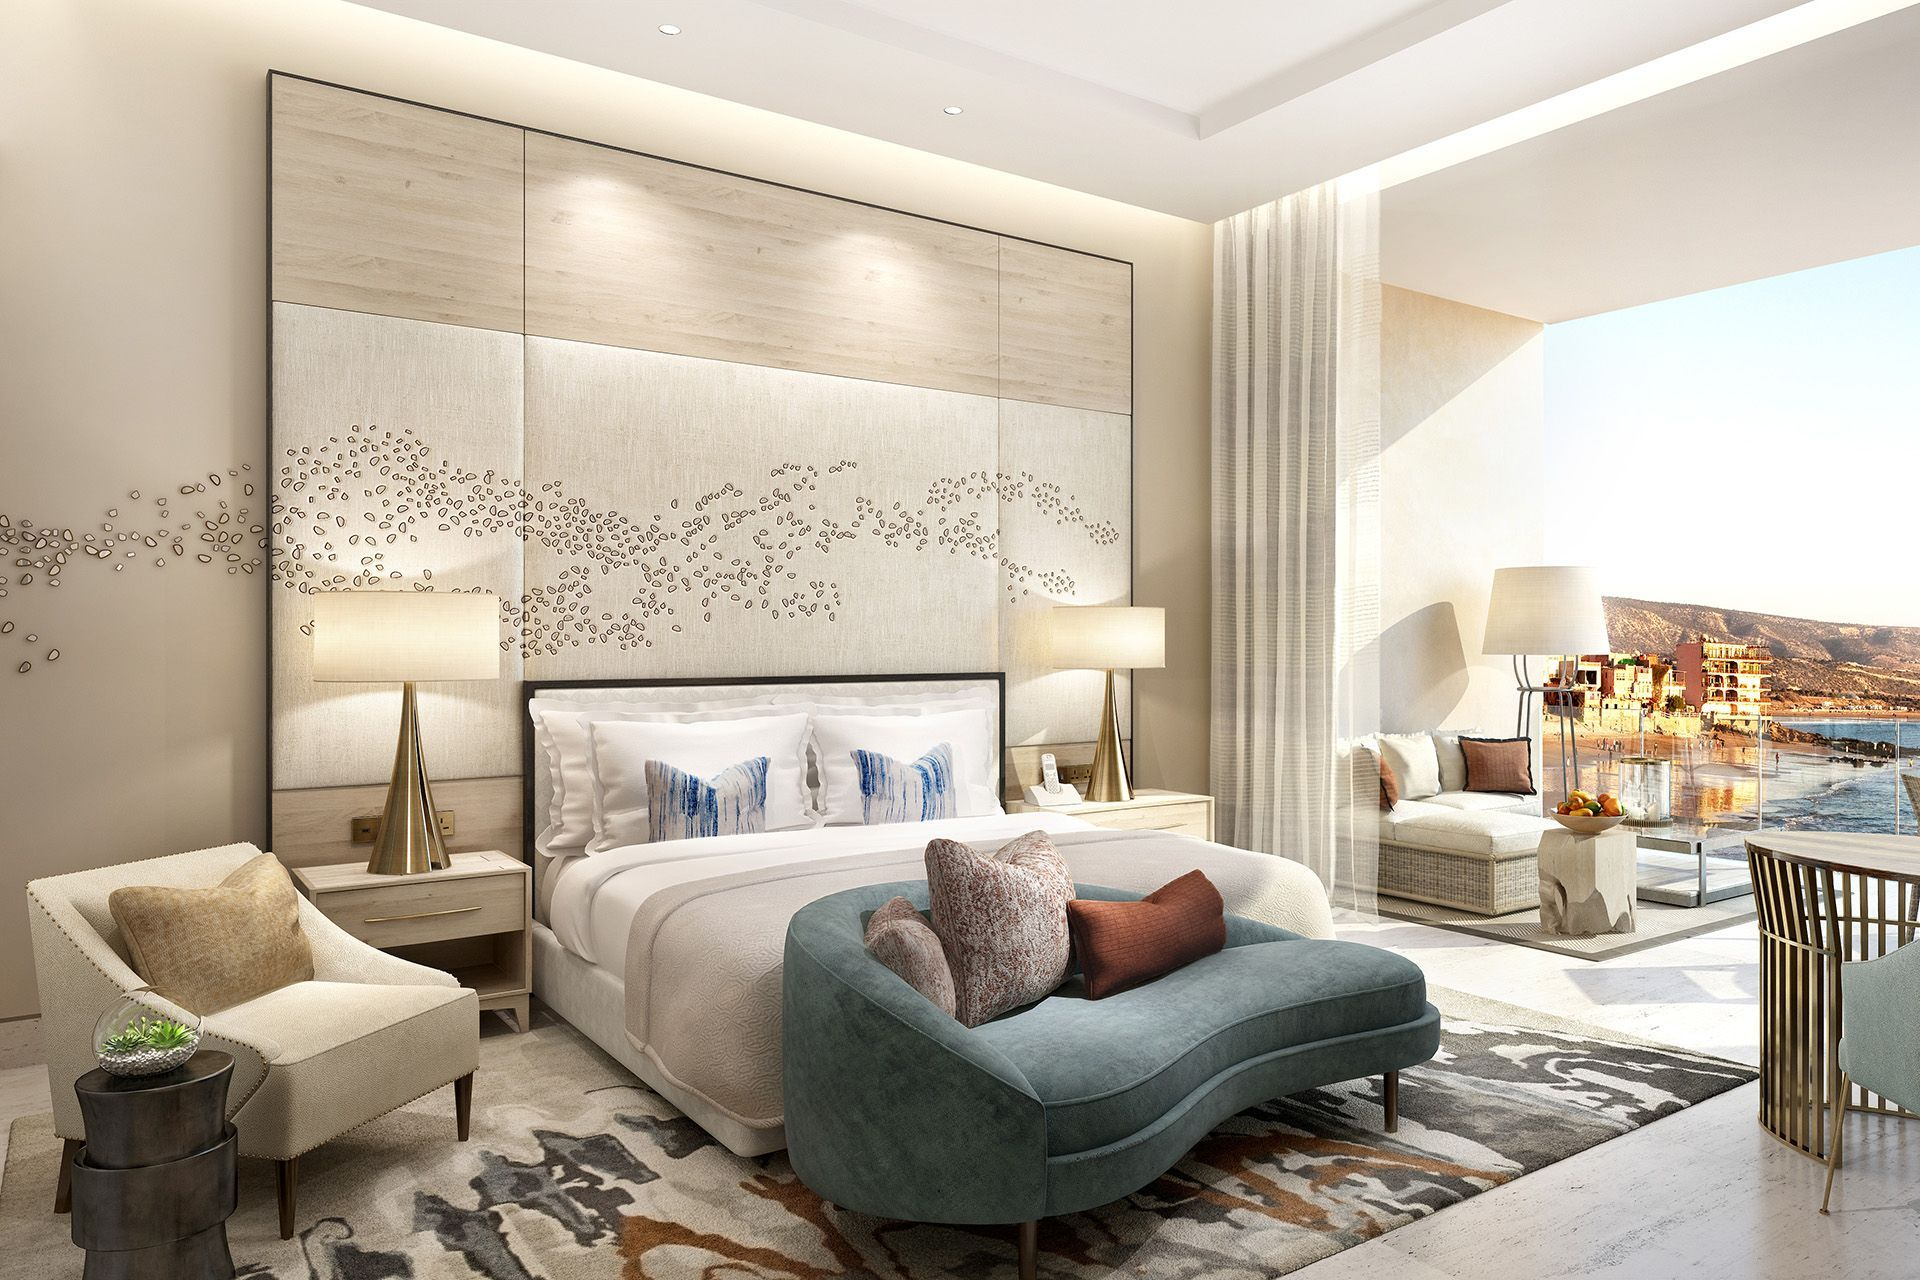 Four seasons taghazout interior designers wimberly for Interior decoration for bedroom pictures